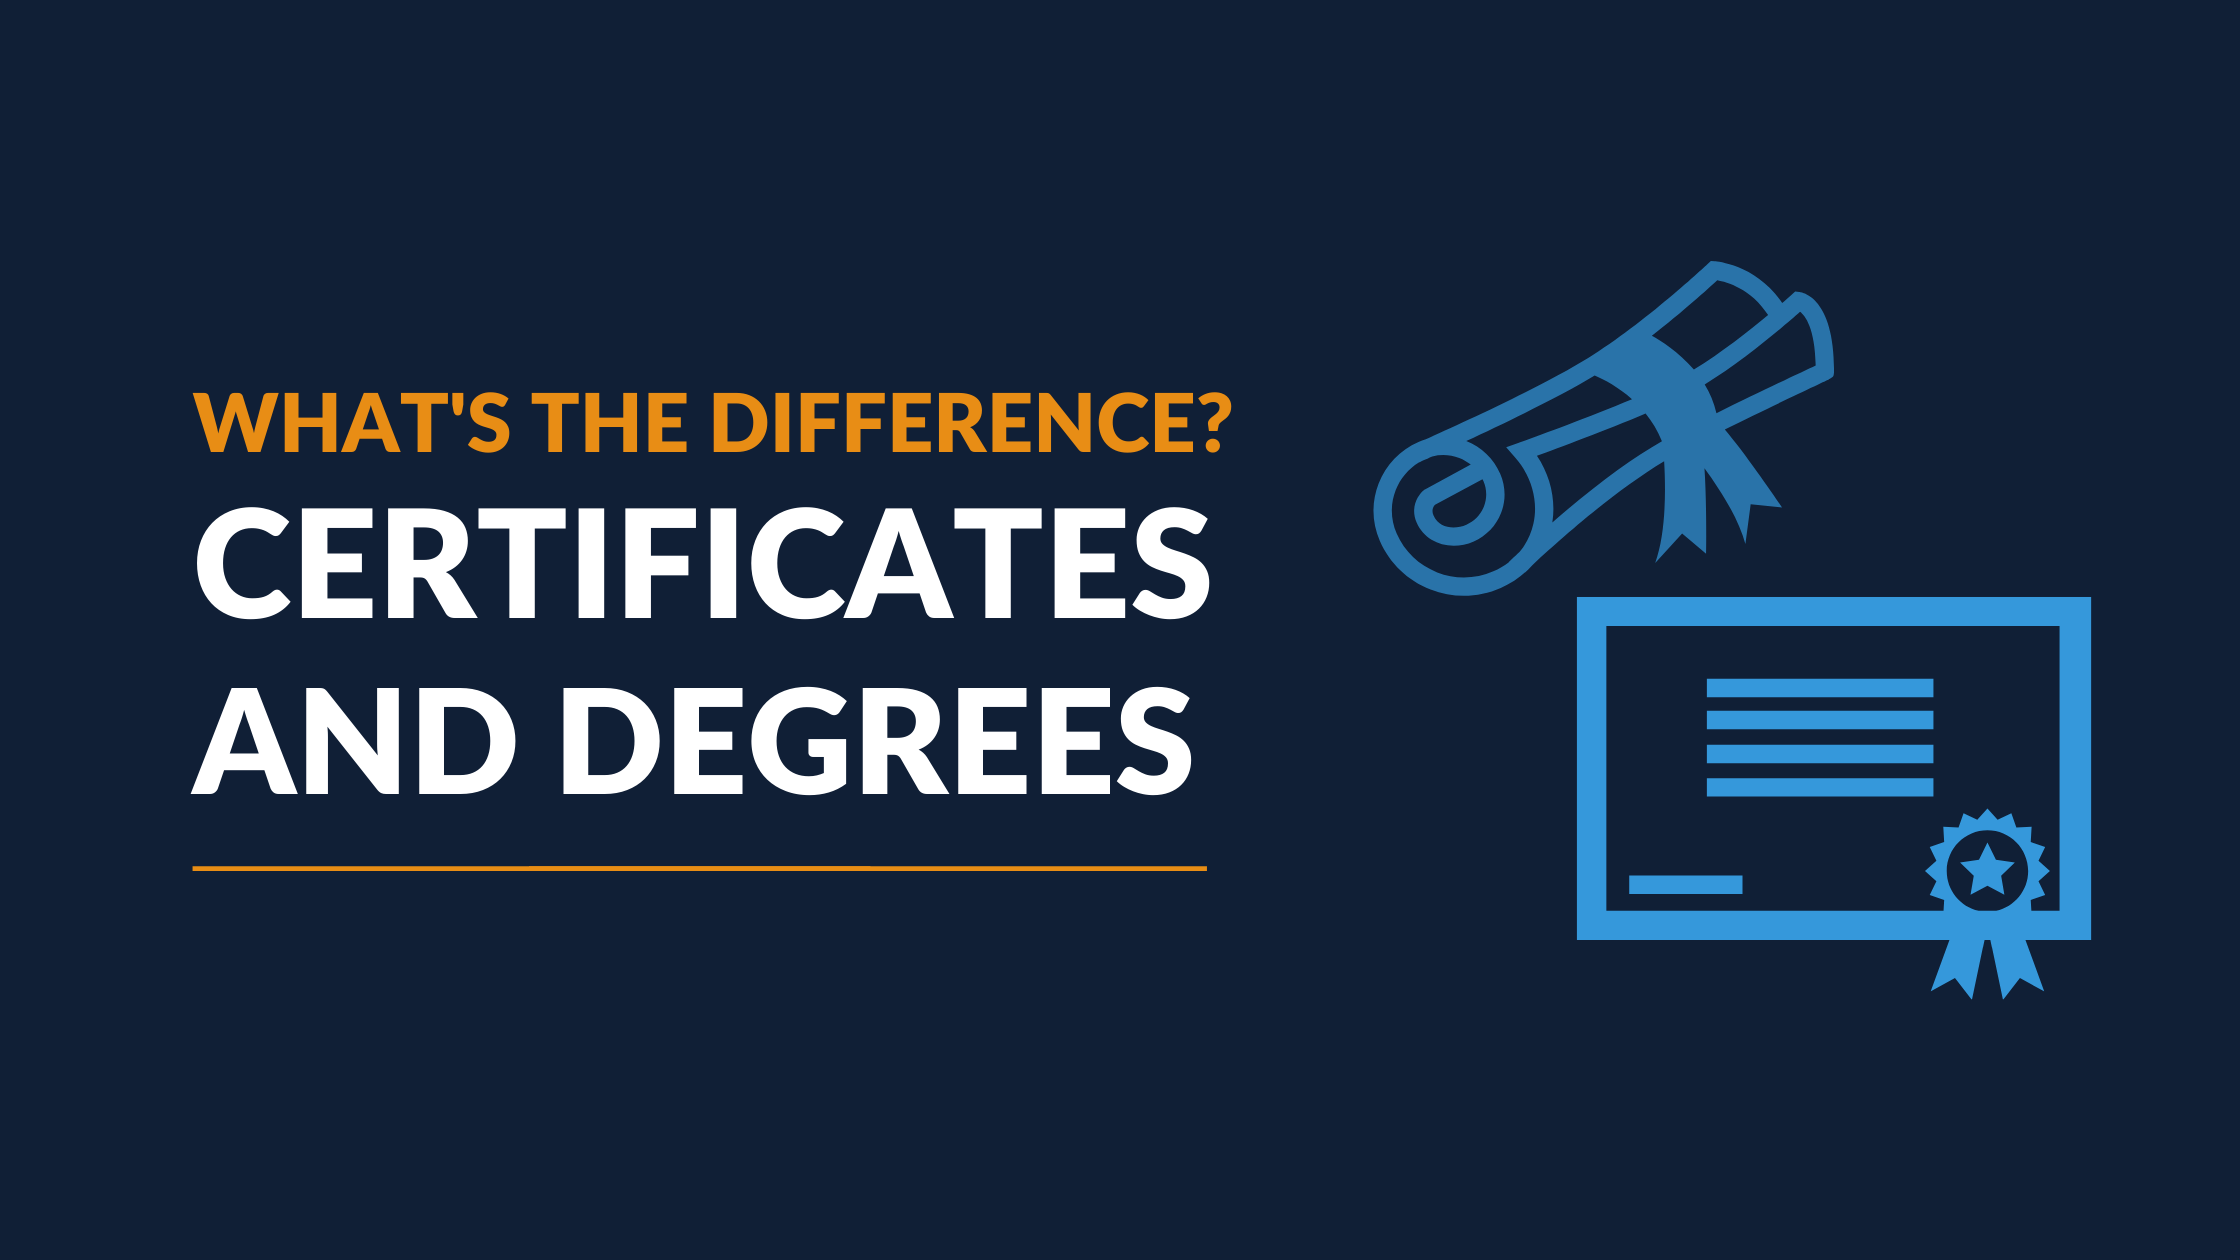 What's the Difference Between a Certificate and Degree?